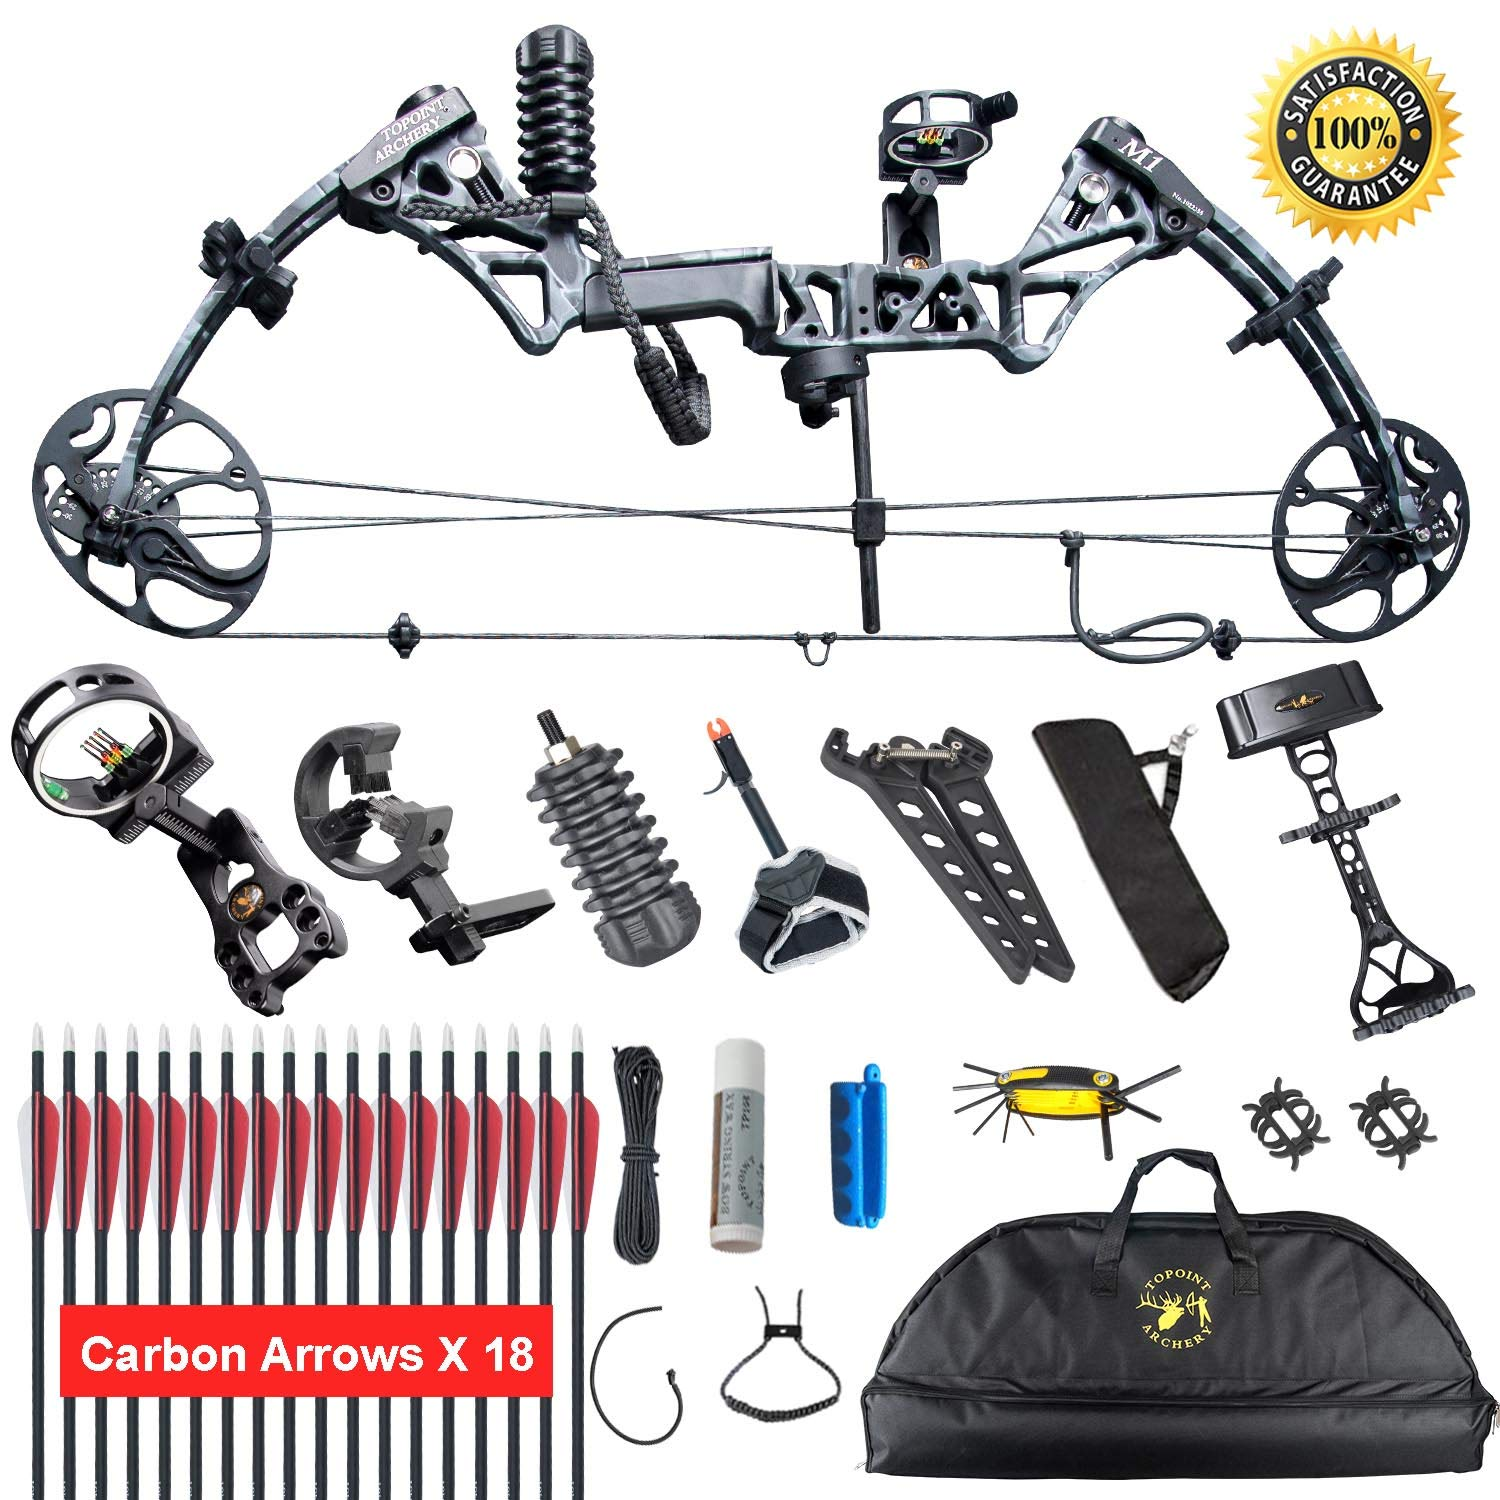 XGeek Compound Bow,with Hunting Accessories,CNC Milling Bow Riser,USA Gordon Composites Limb,BCY String,19 -30 Draw Length,10-50 Lbs Draw Weight,IBO 320fps 2 Years Warranty